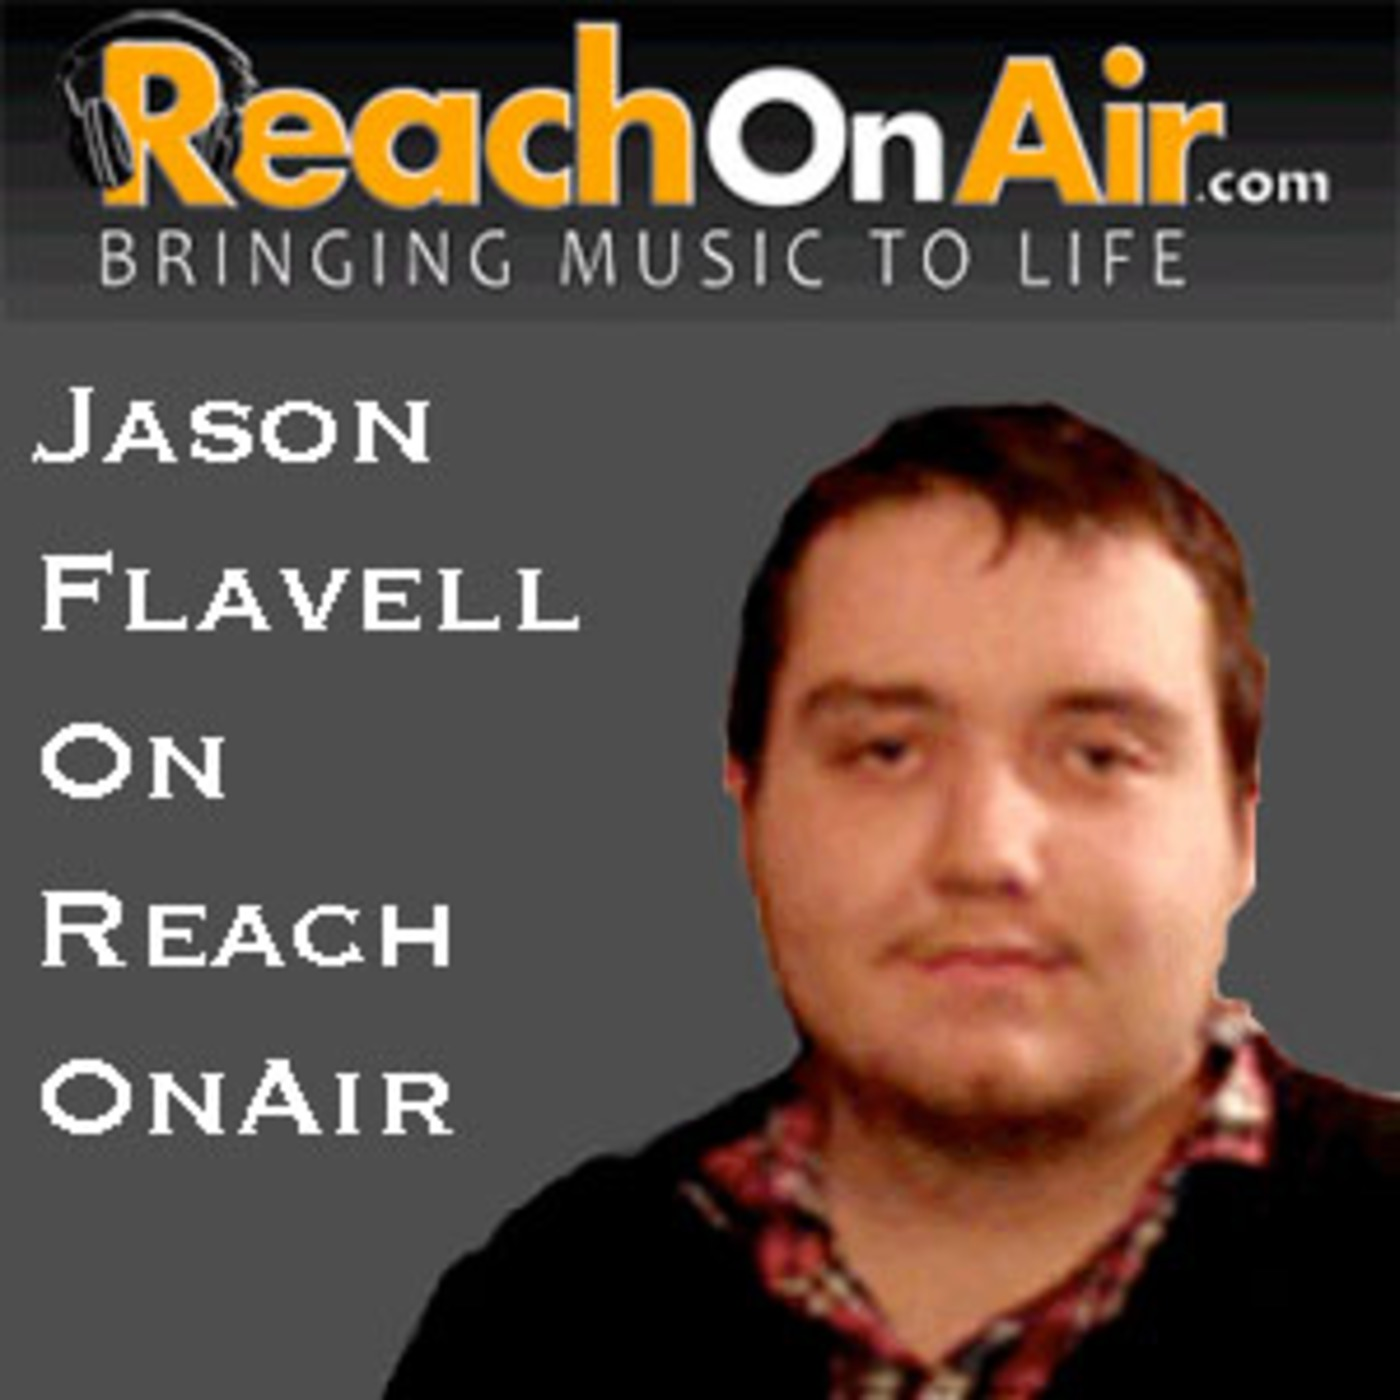 Jason Flavell On Reach OnAir